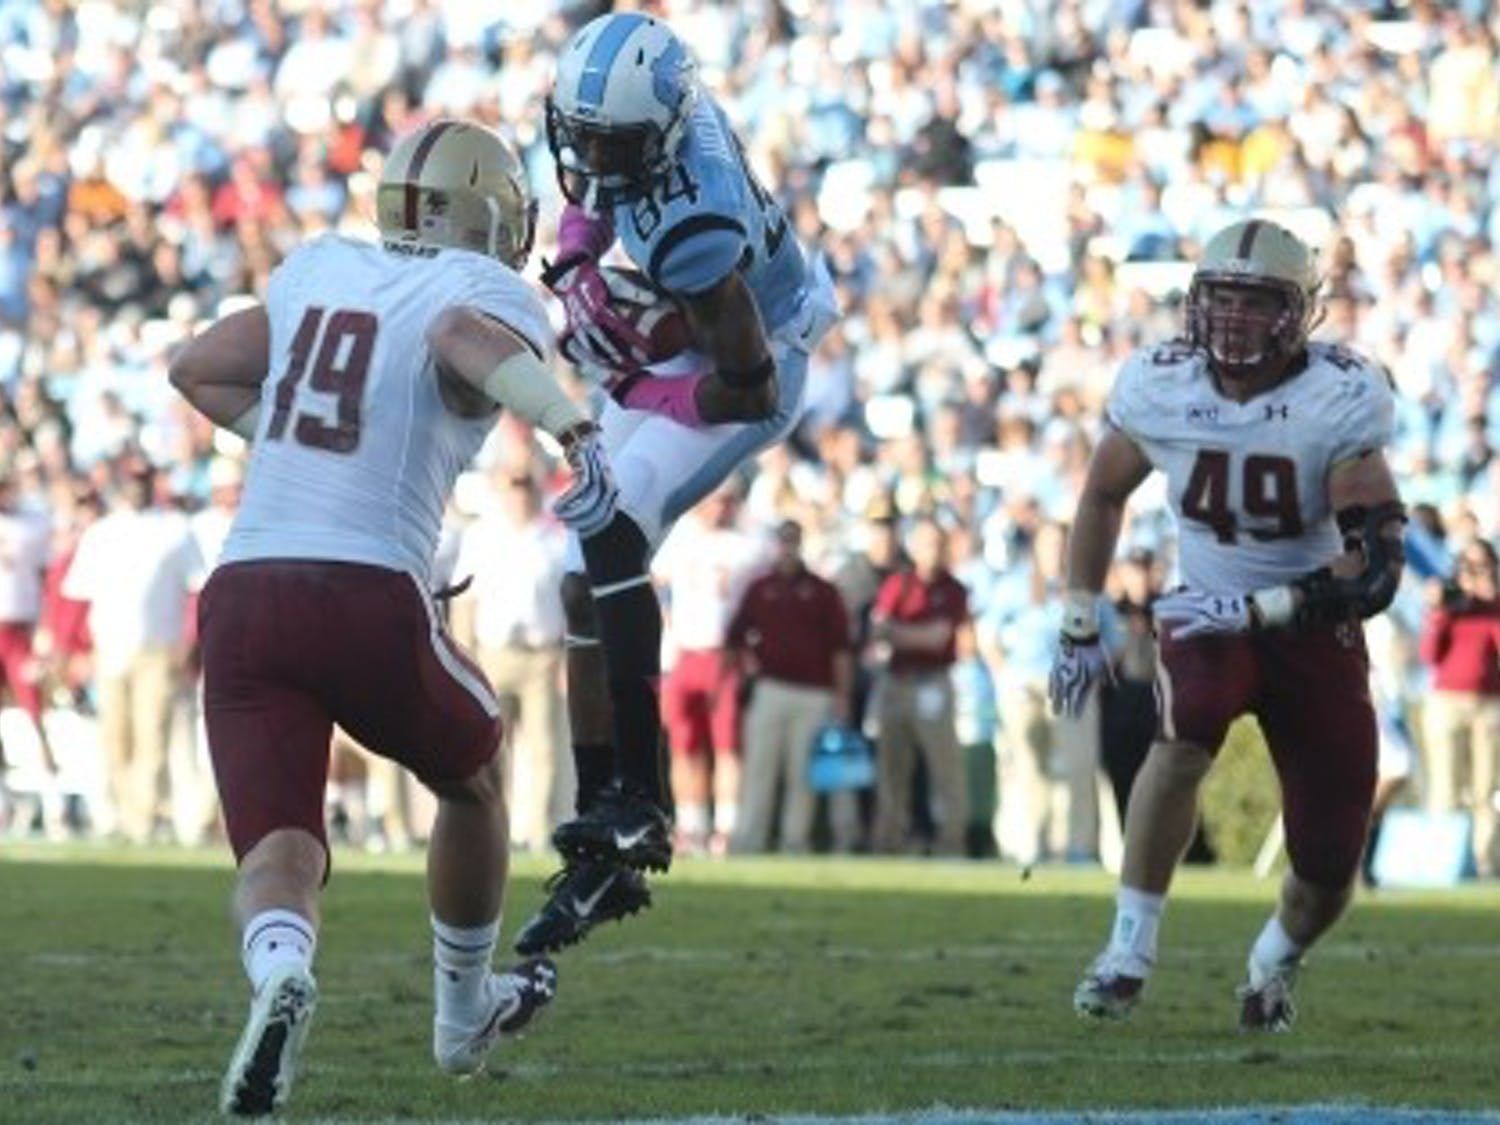 UNC wide receiver Bug Howard (84) catches a pass for a touchdown in a game against Boston College. Howard finished the 2014 football season with 42 catches and 455 yards with 2 touchdowns.